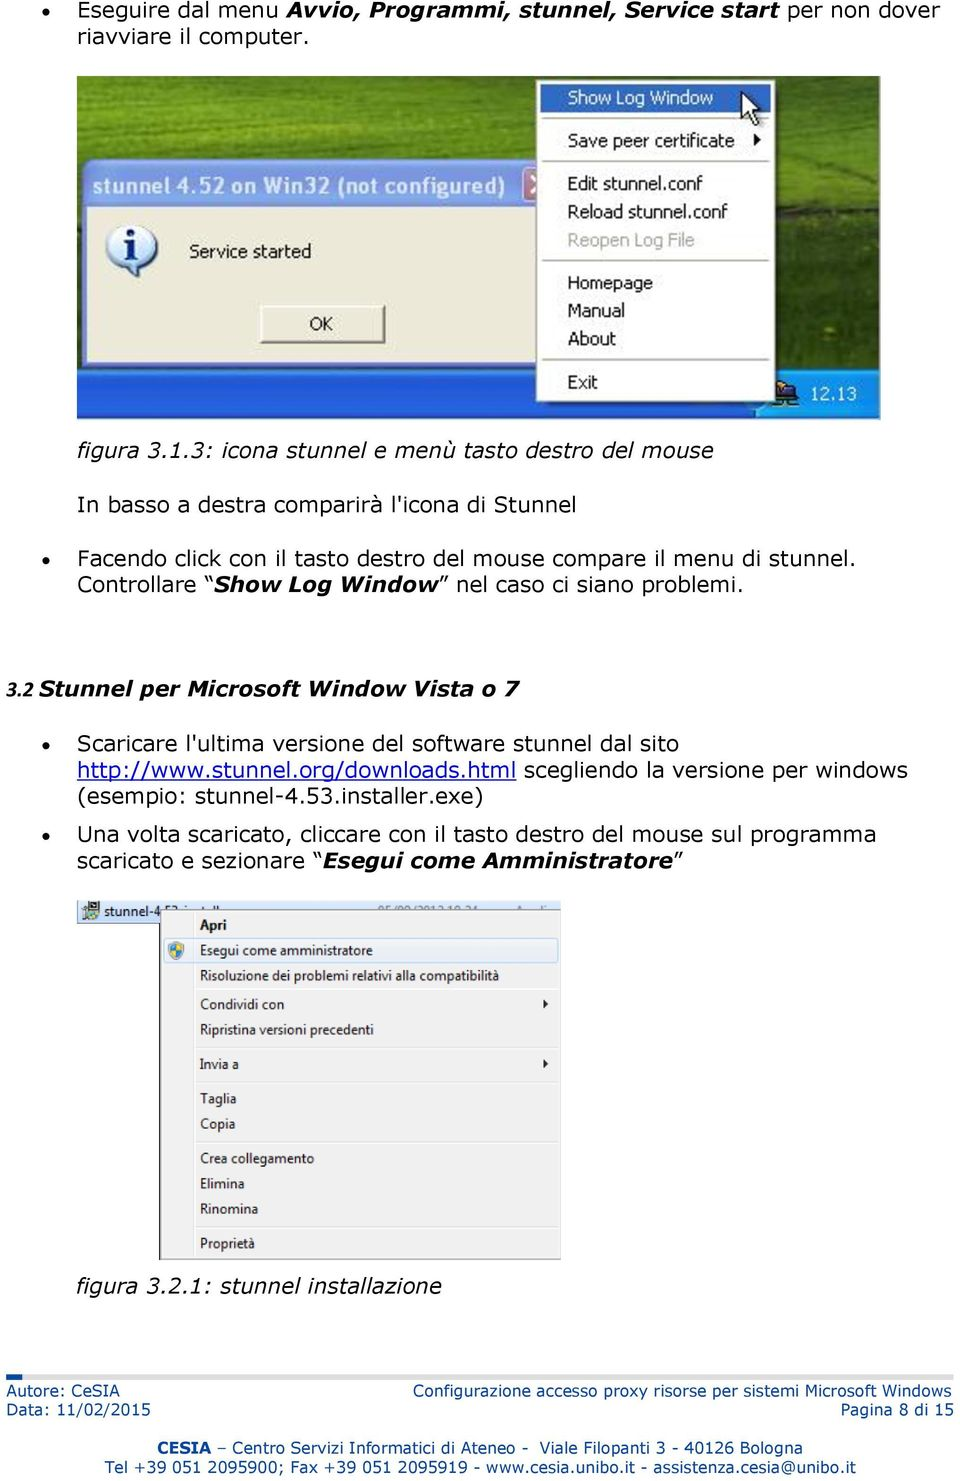 Controllare Show Log Window nel caso ci siano problemi. 3.2 Stunnel per Microsoft Window Vista o 7 Scaricare l'ultima versione del software stunnel dal sito http://www.stunnel.org/downloads.